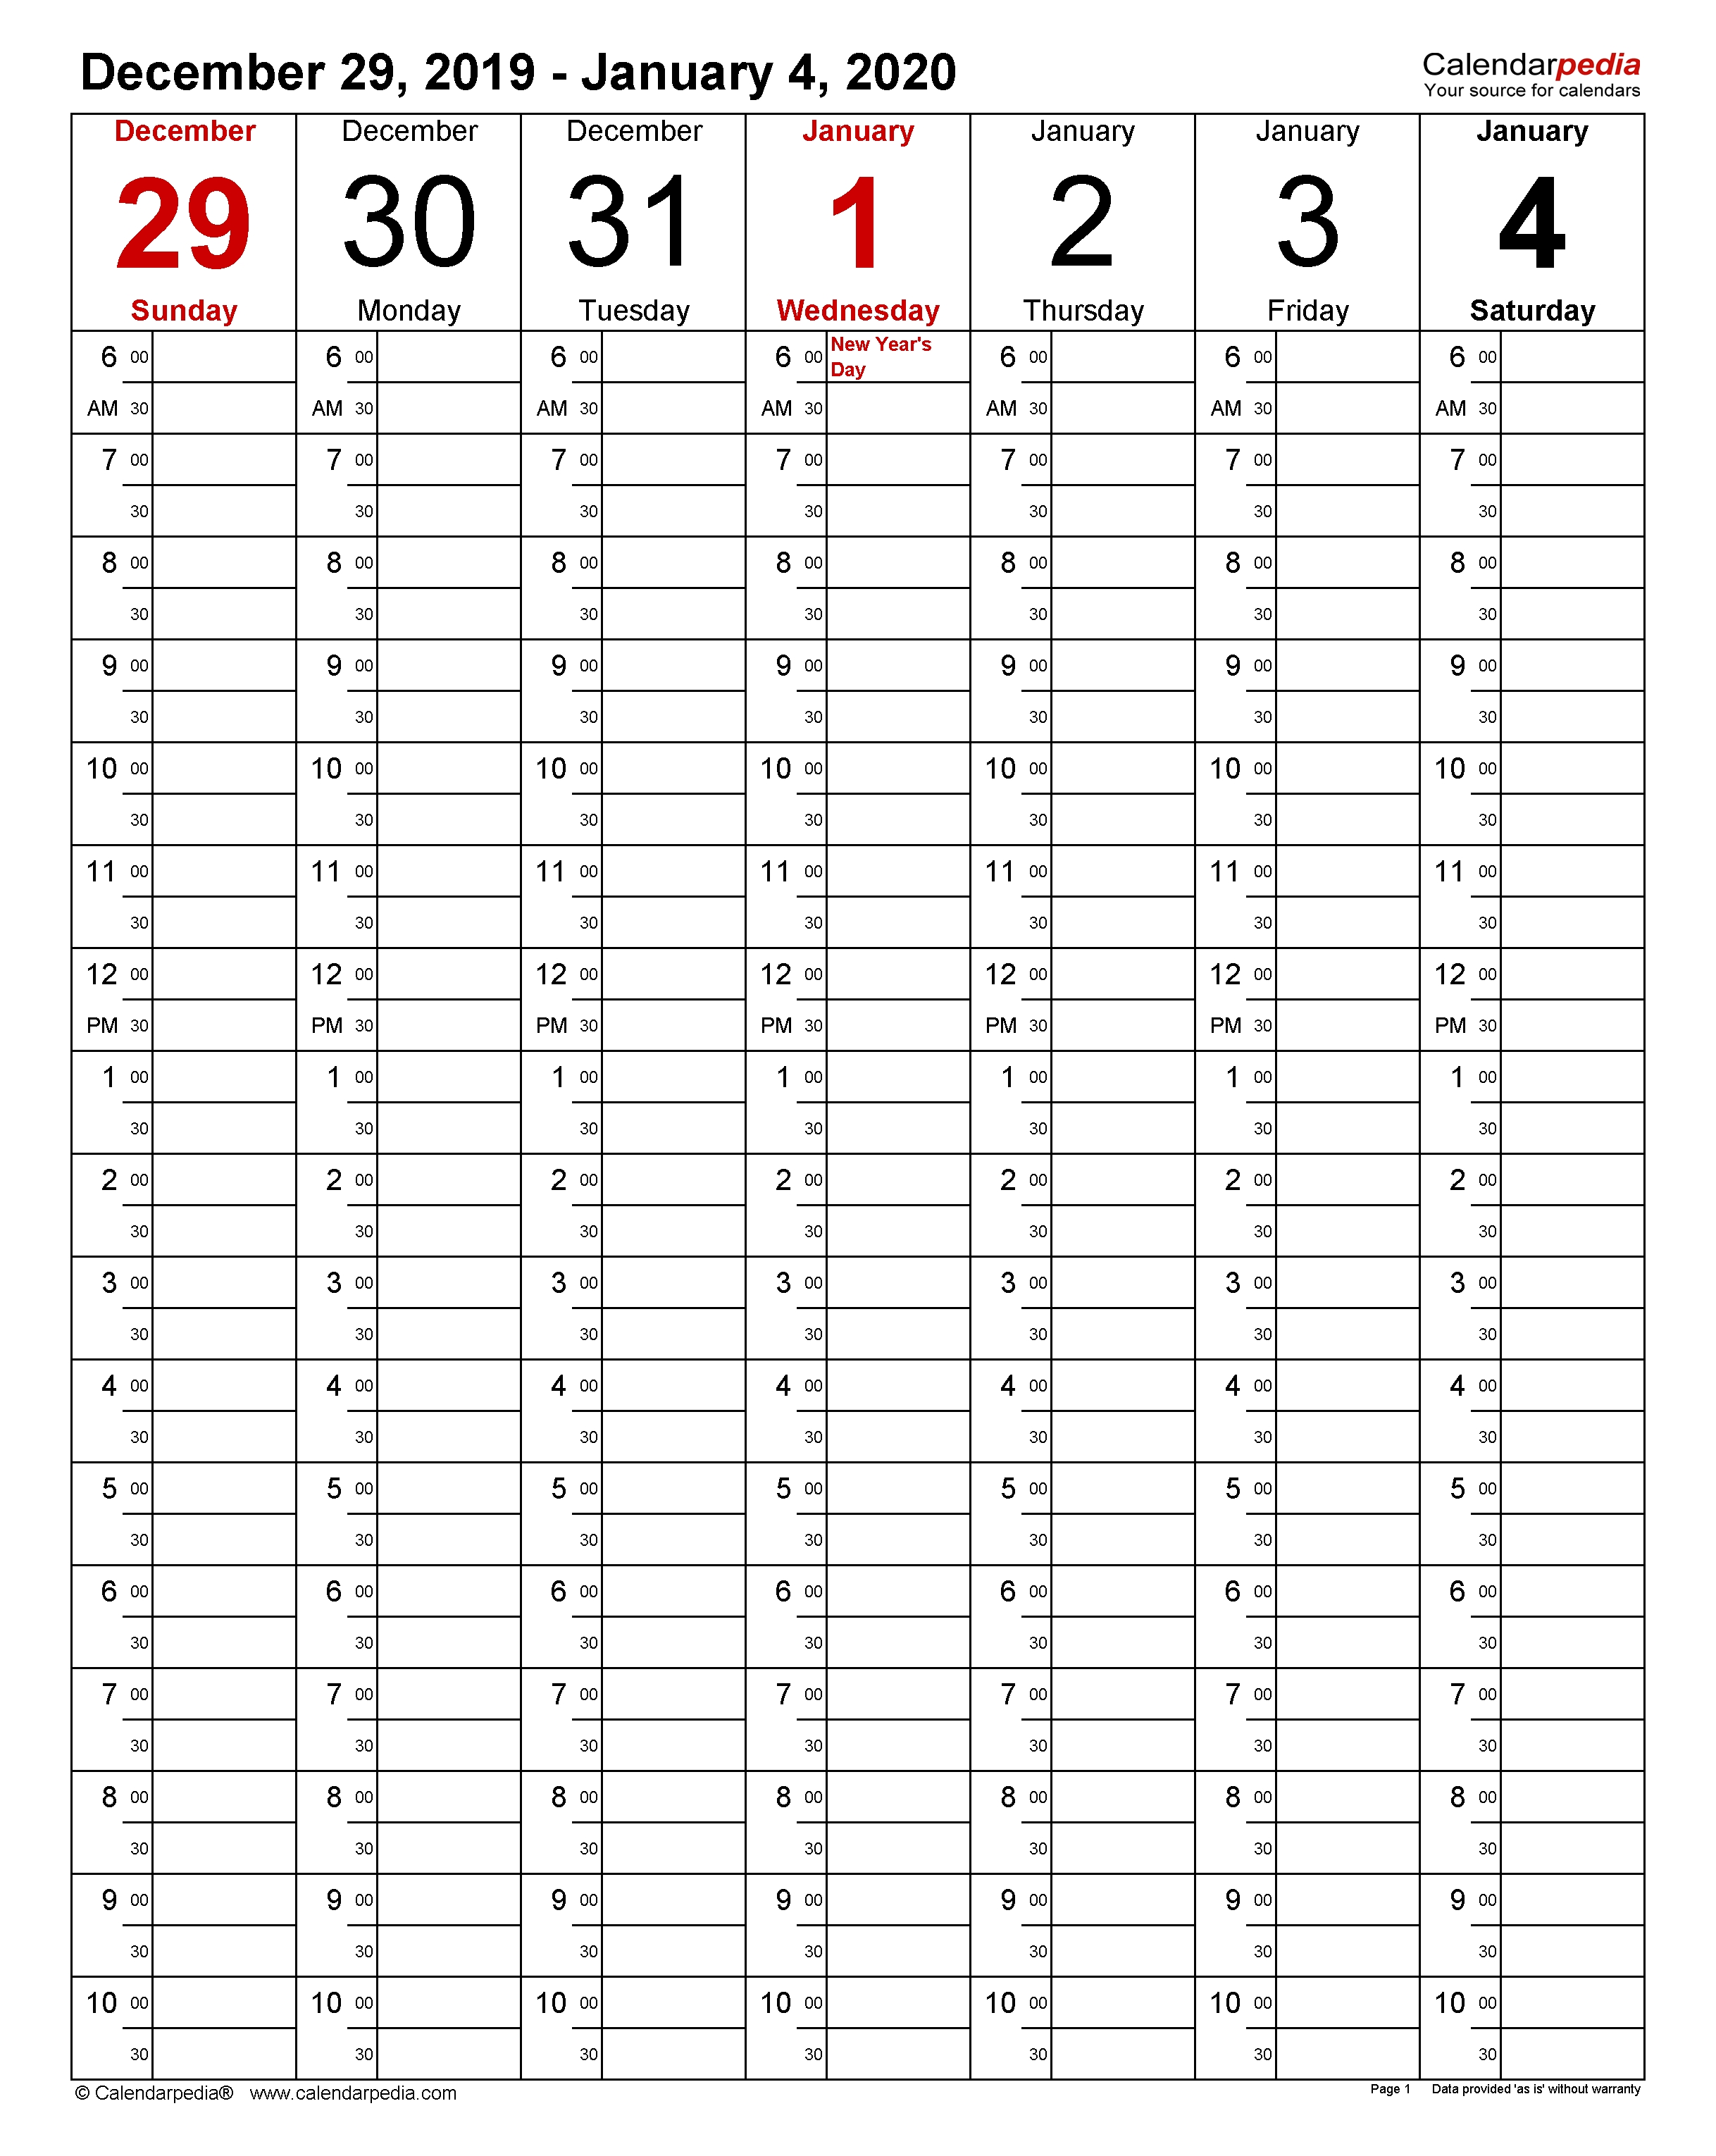 Weekly Calendars 2020 For Word - 12 Free Printable Templates  Calendar With Time